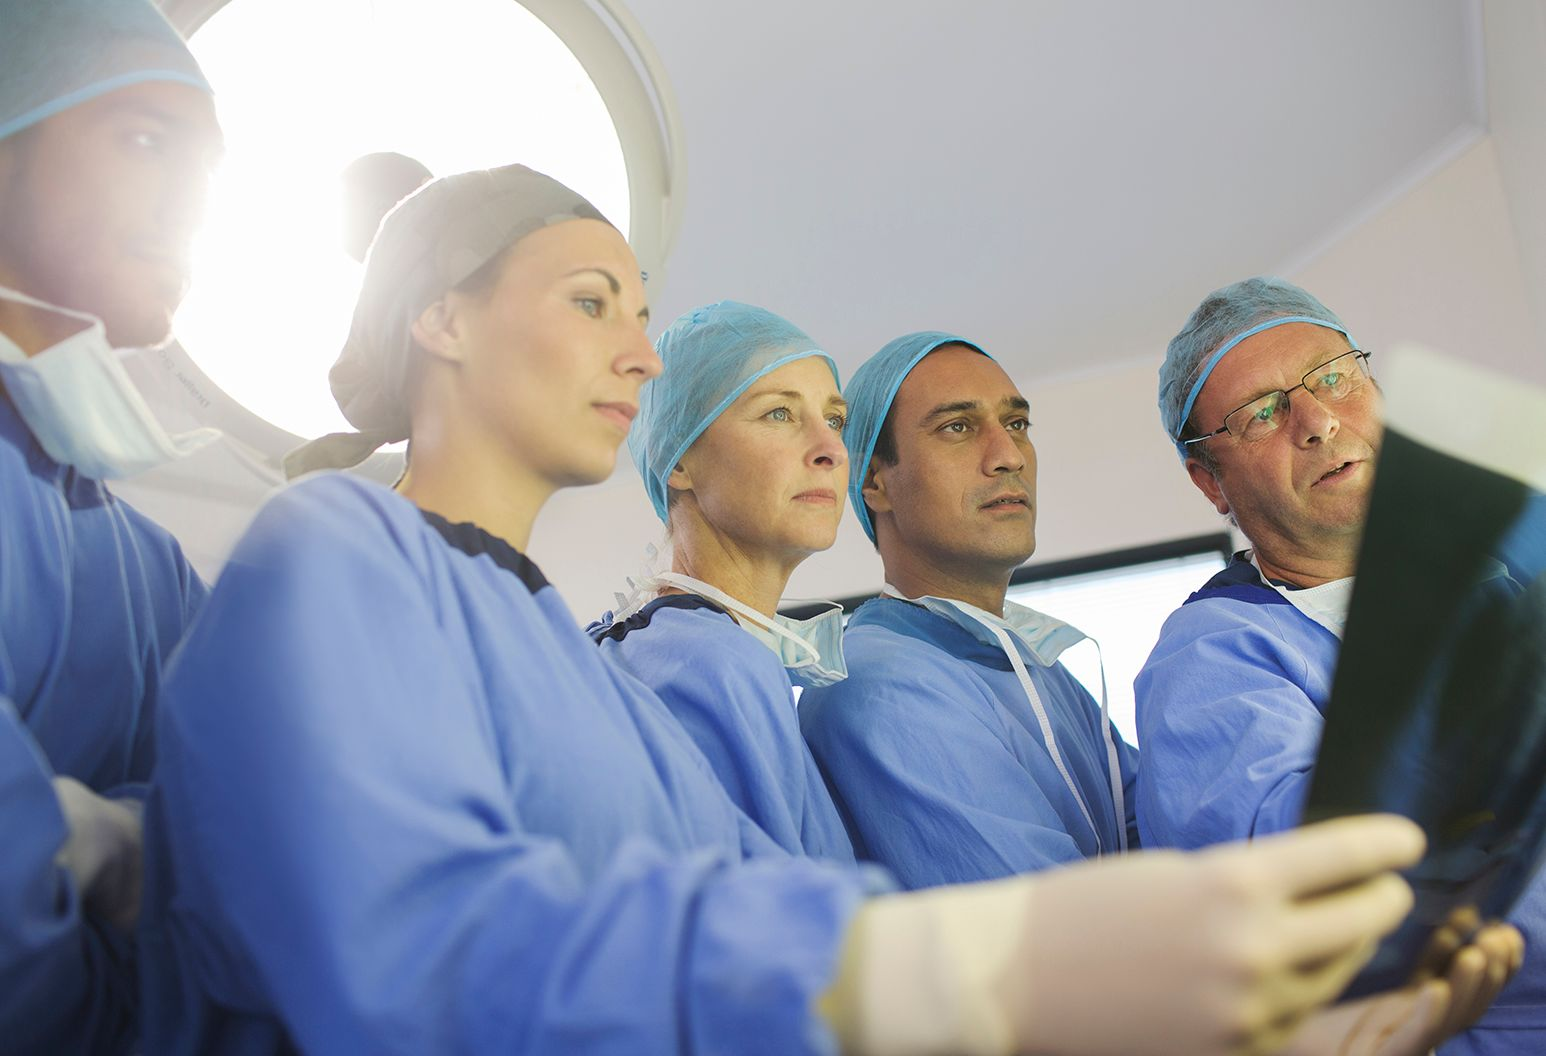 group of surgeons look at x-ray